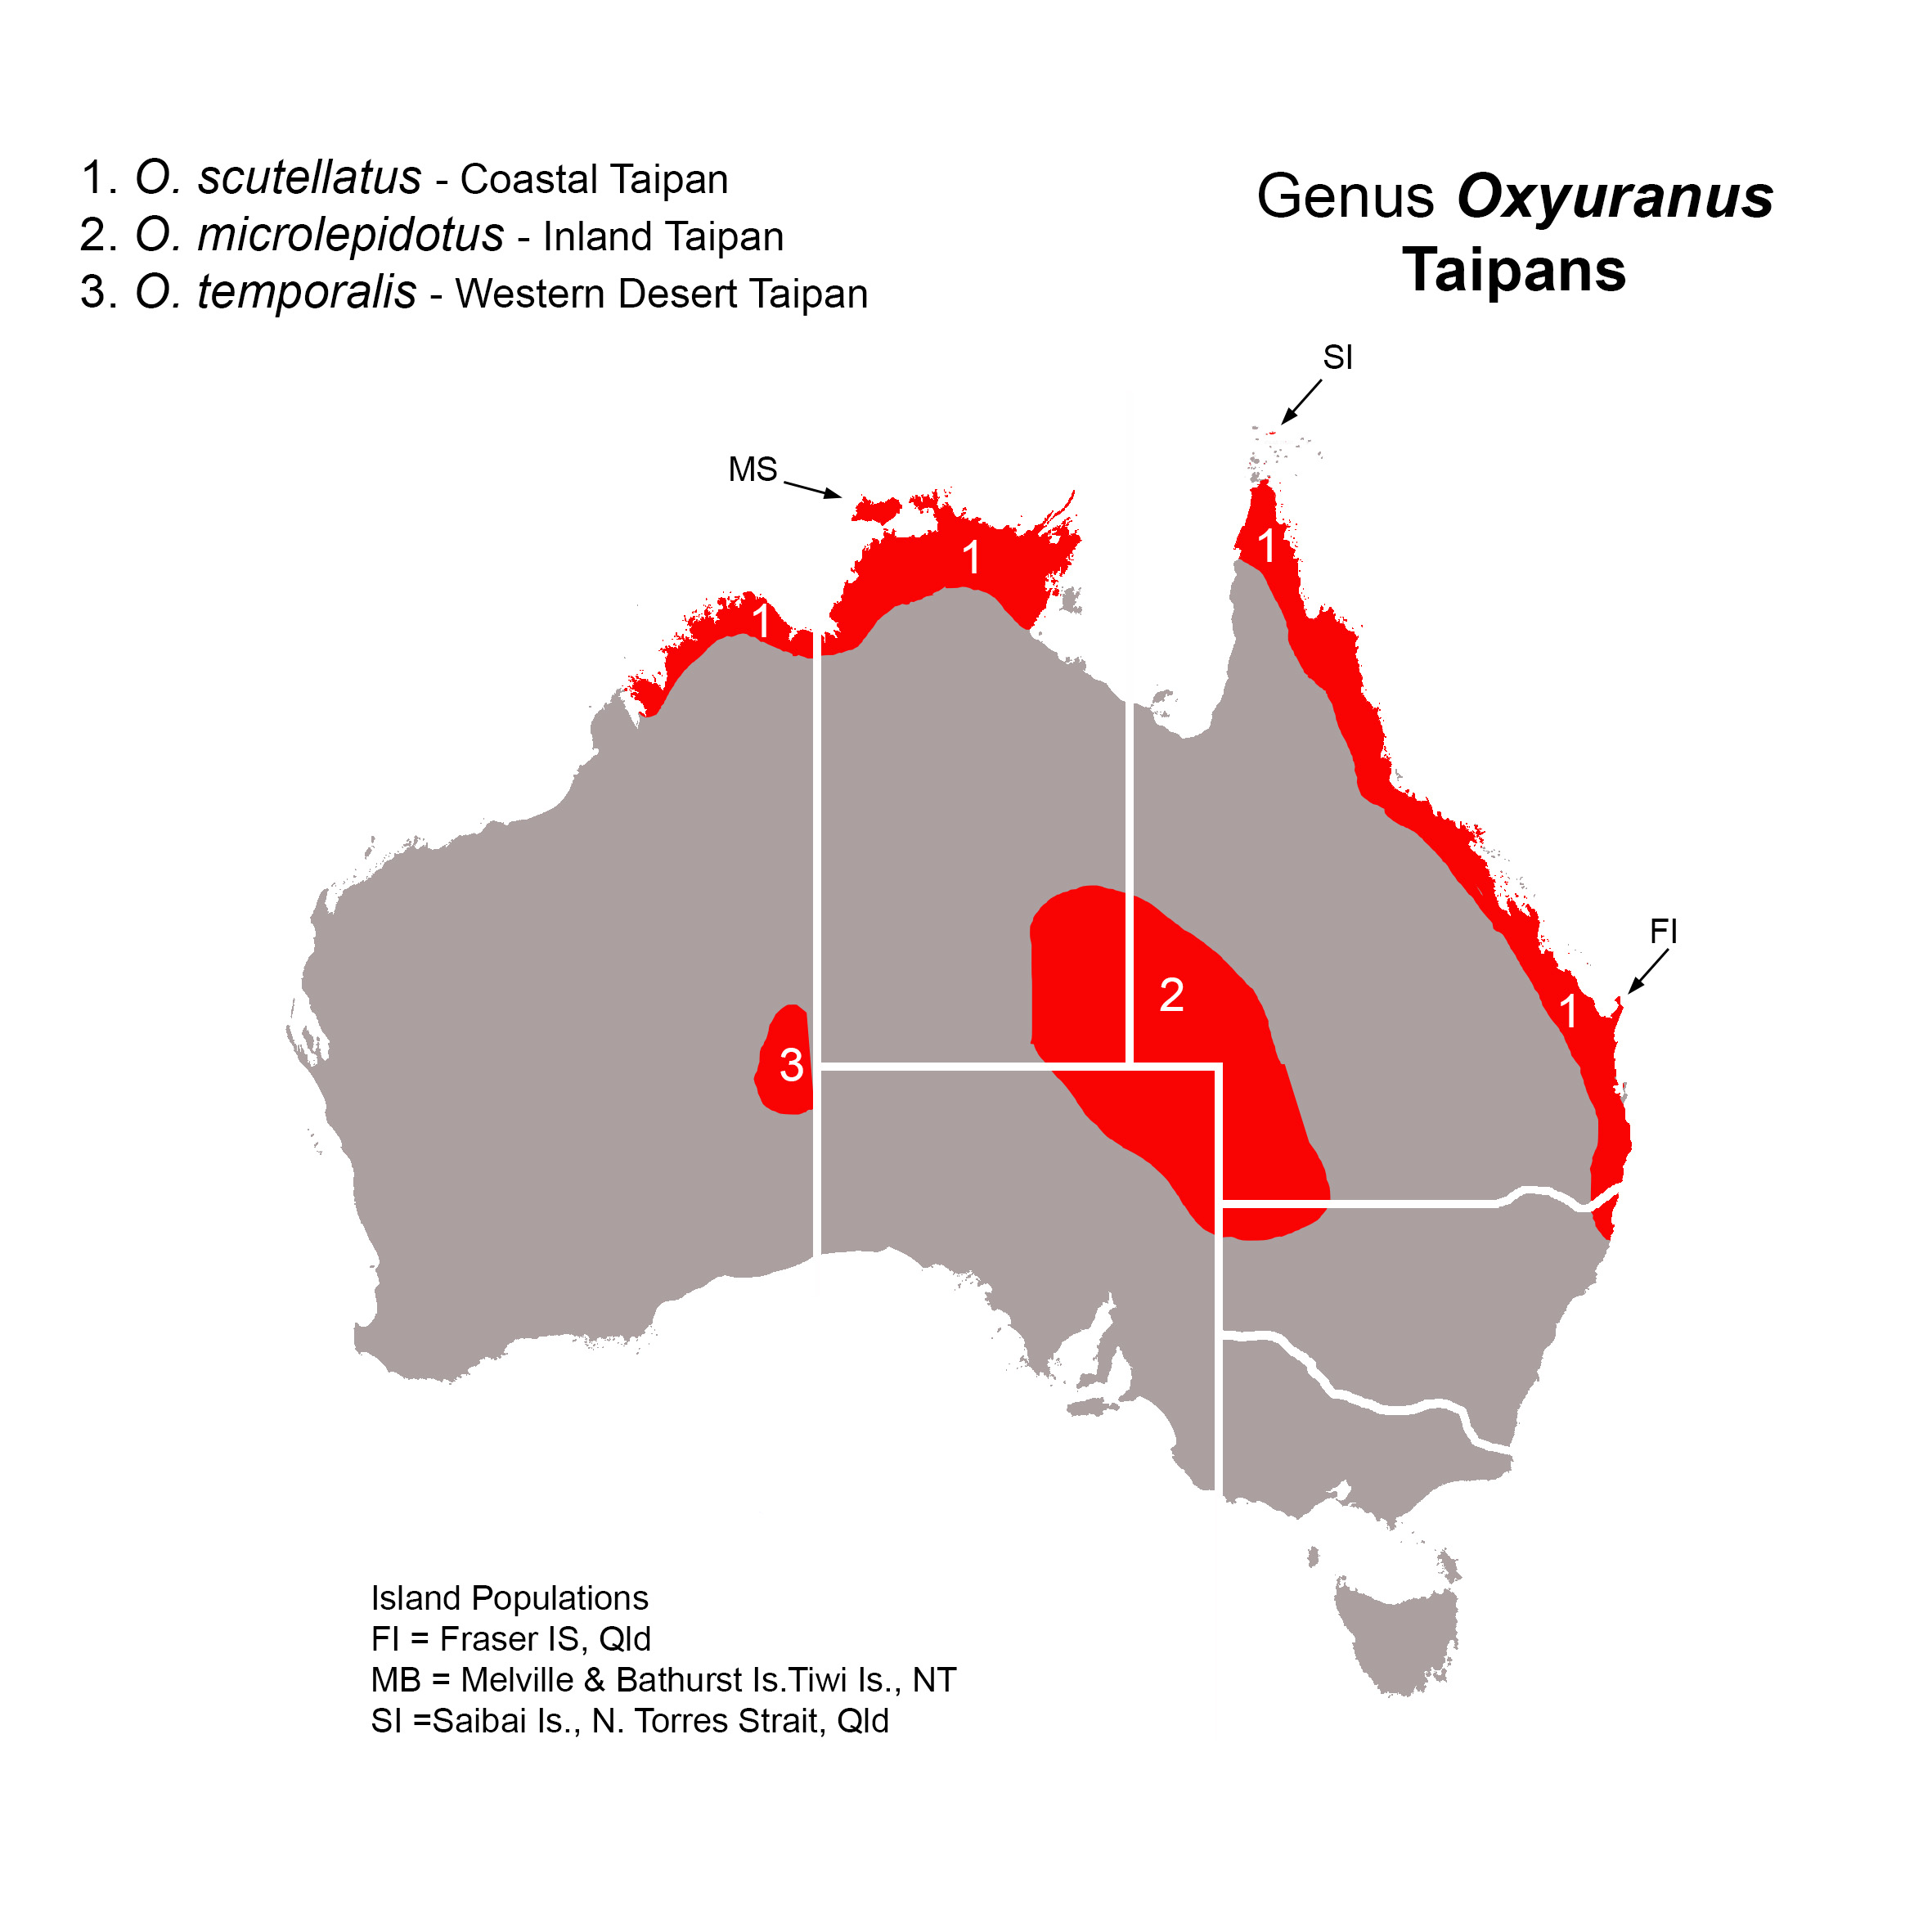 an introduction to the analysis of the oxyuranus microlepidotus The report contains an analysis of the venom of the inland taipan, along with its medical uses the inland taipan the oxyuranus microlepidotus (inland taipan) is a member of the family elapidae (elapid snakes), and belongs to the genus oxyuranus.